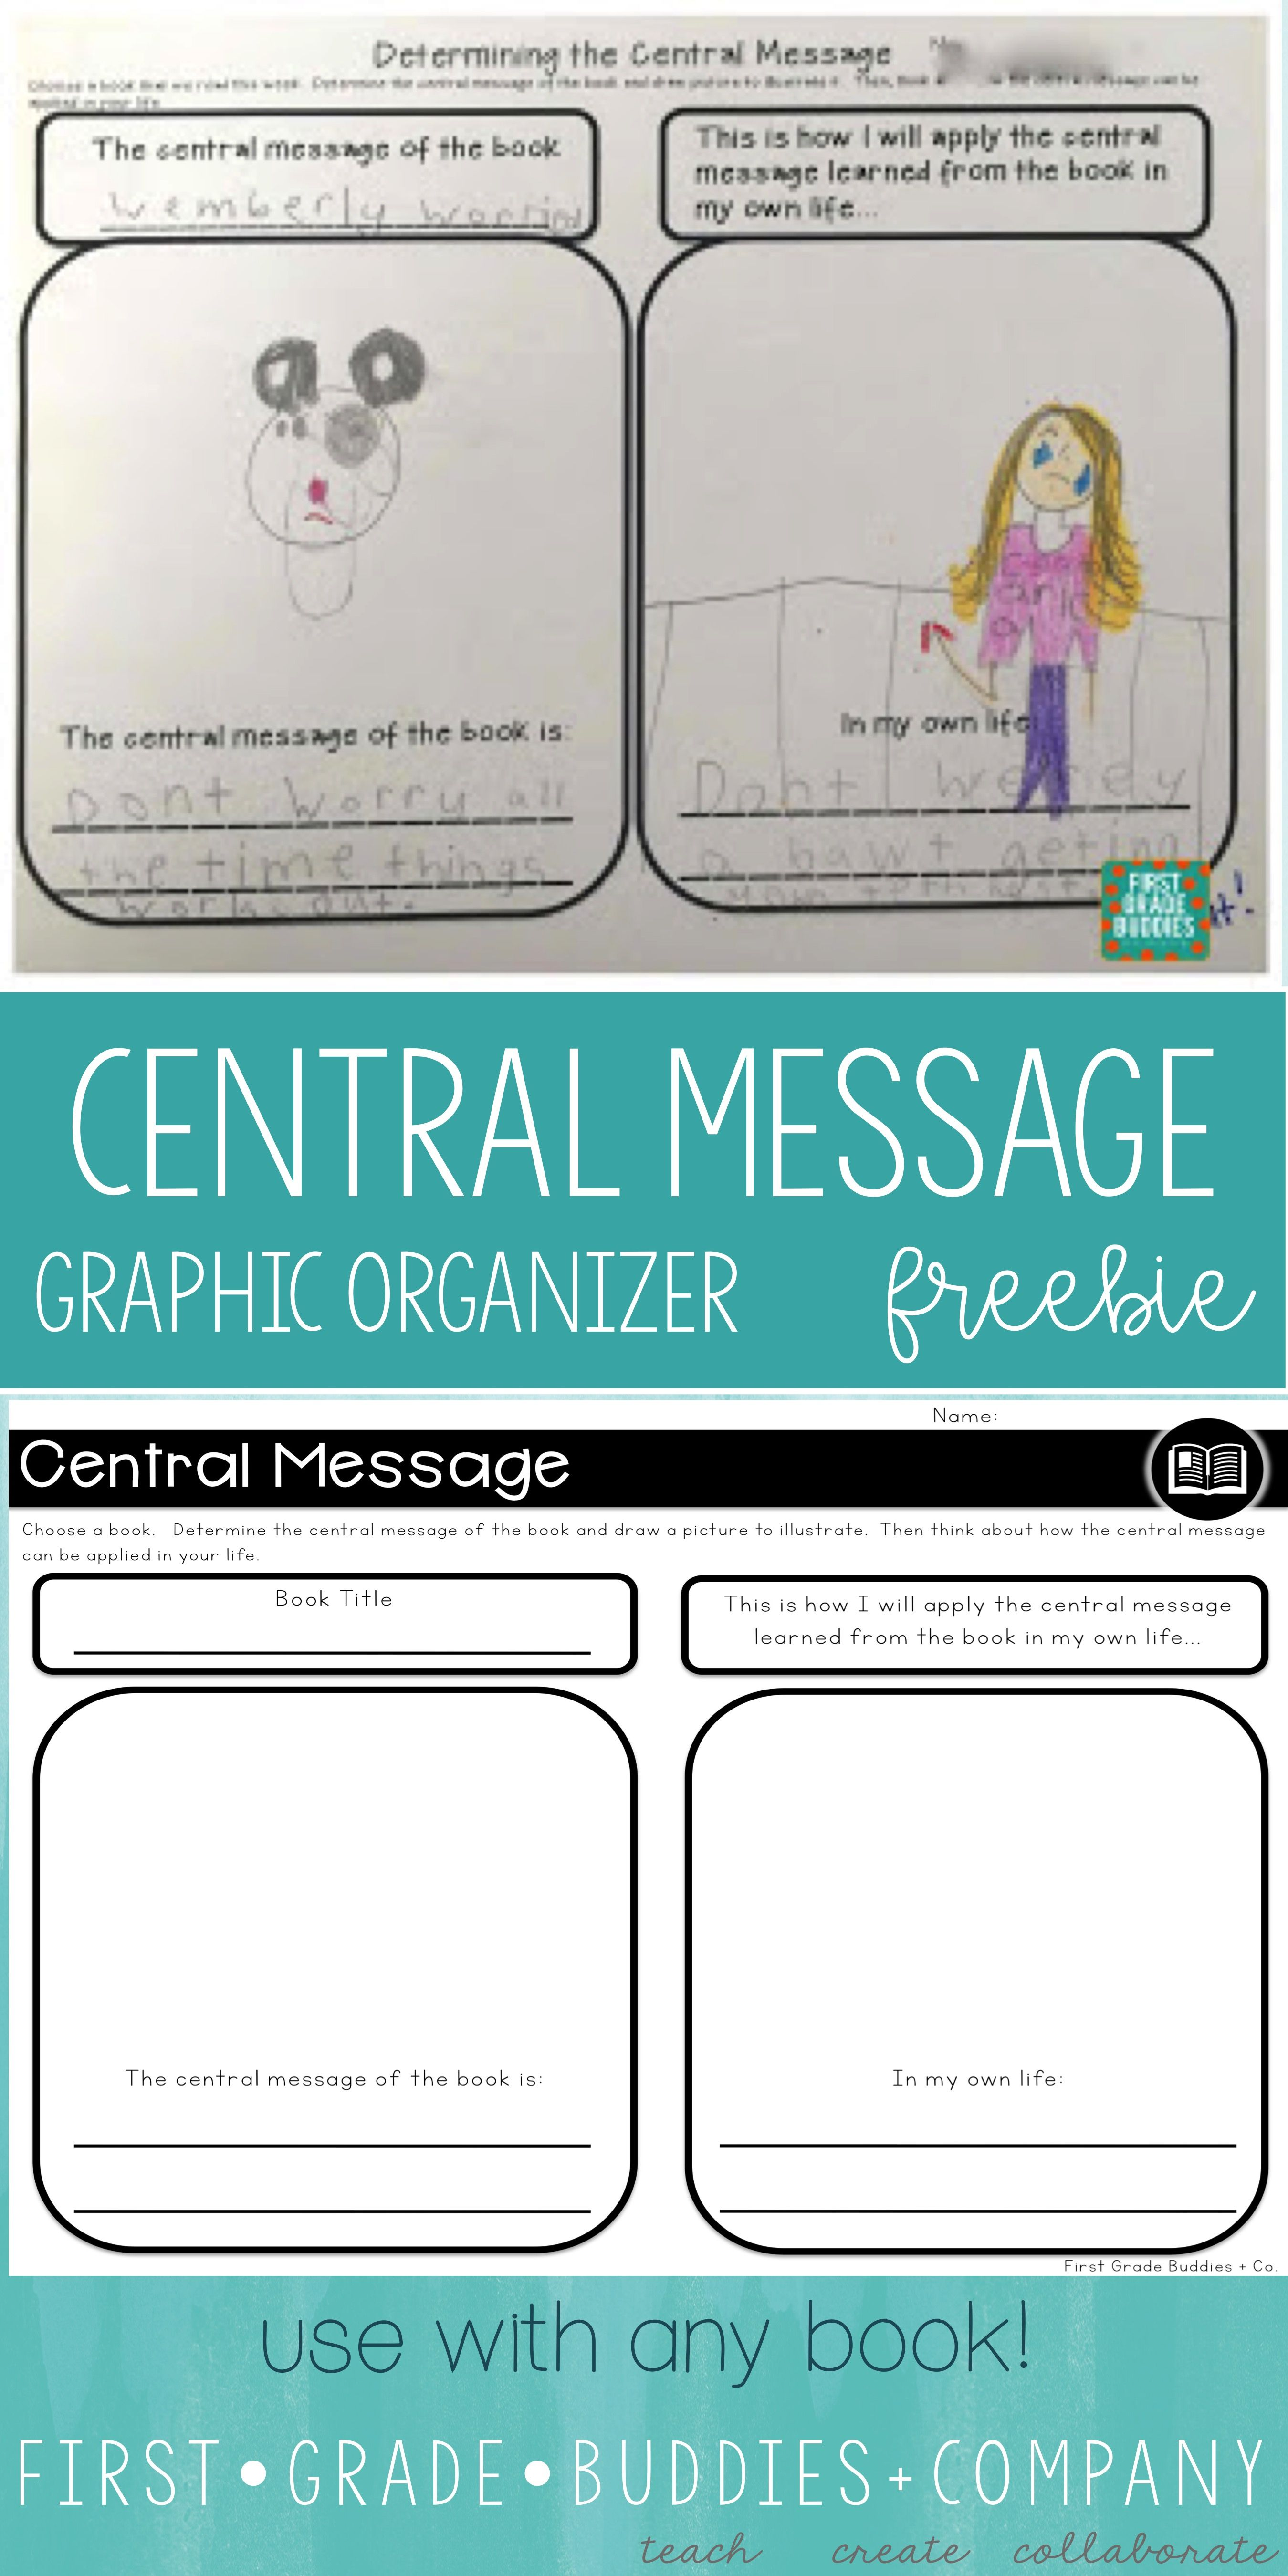 small resolution of First Grade Buddies: Graphic Organizers for ANY Book! We created one great  big FREE reso…   Reading graphic organizers